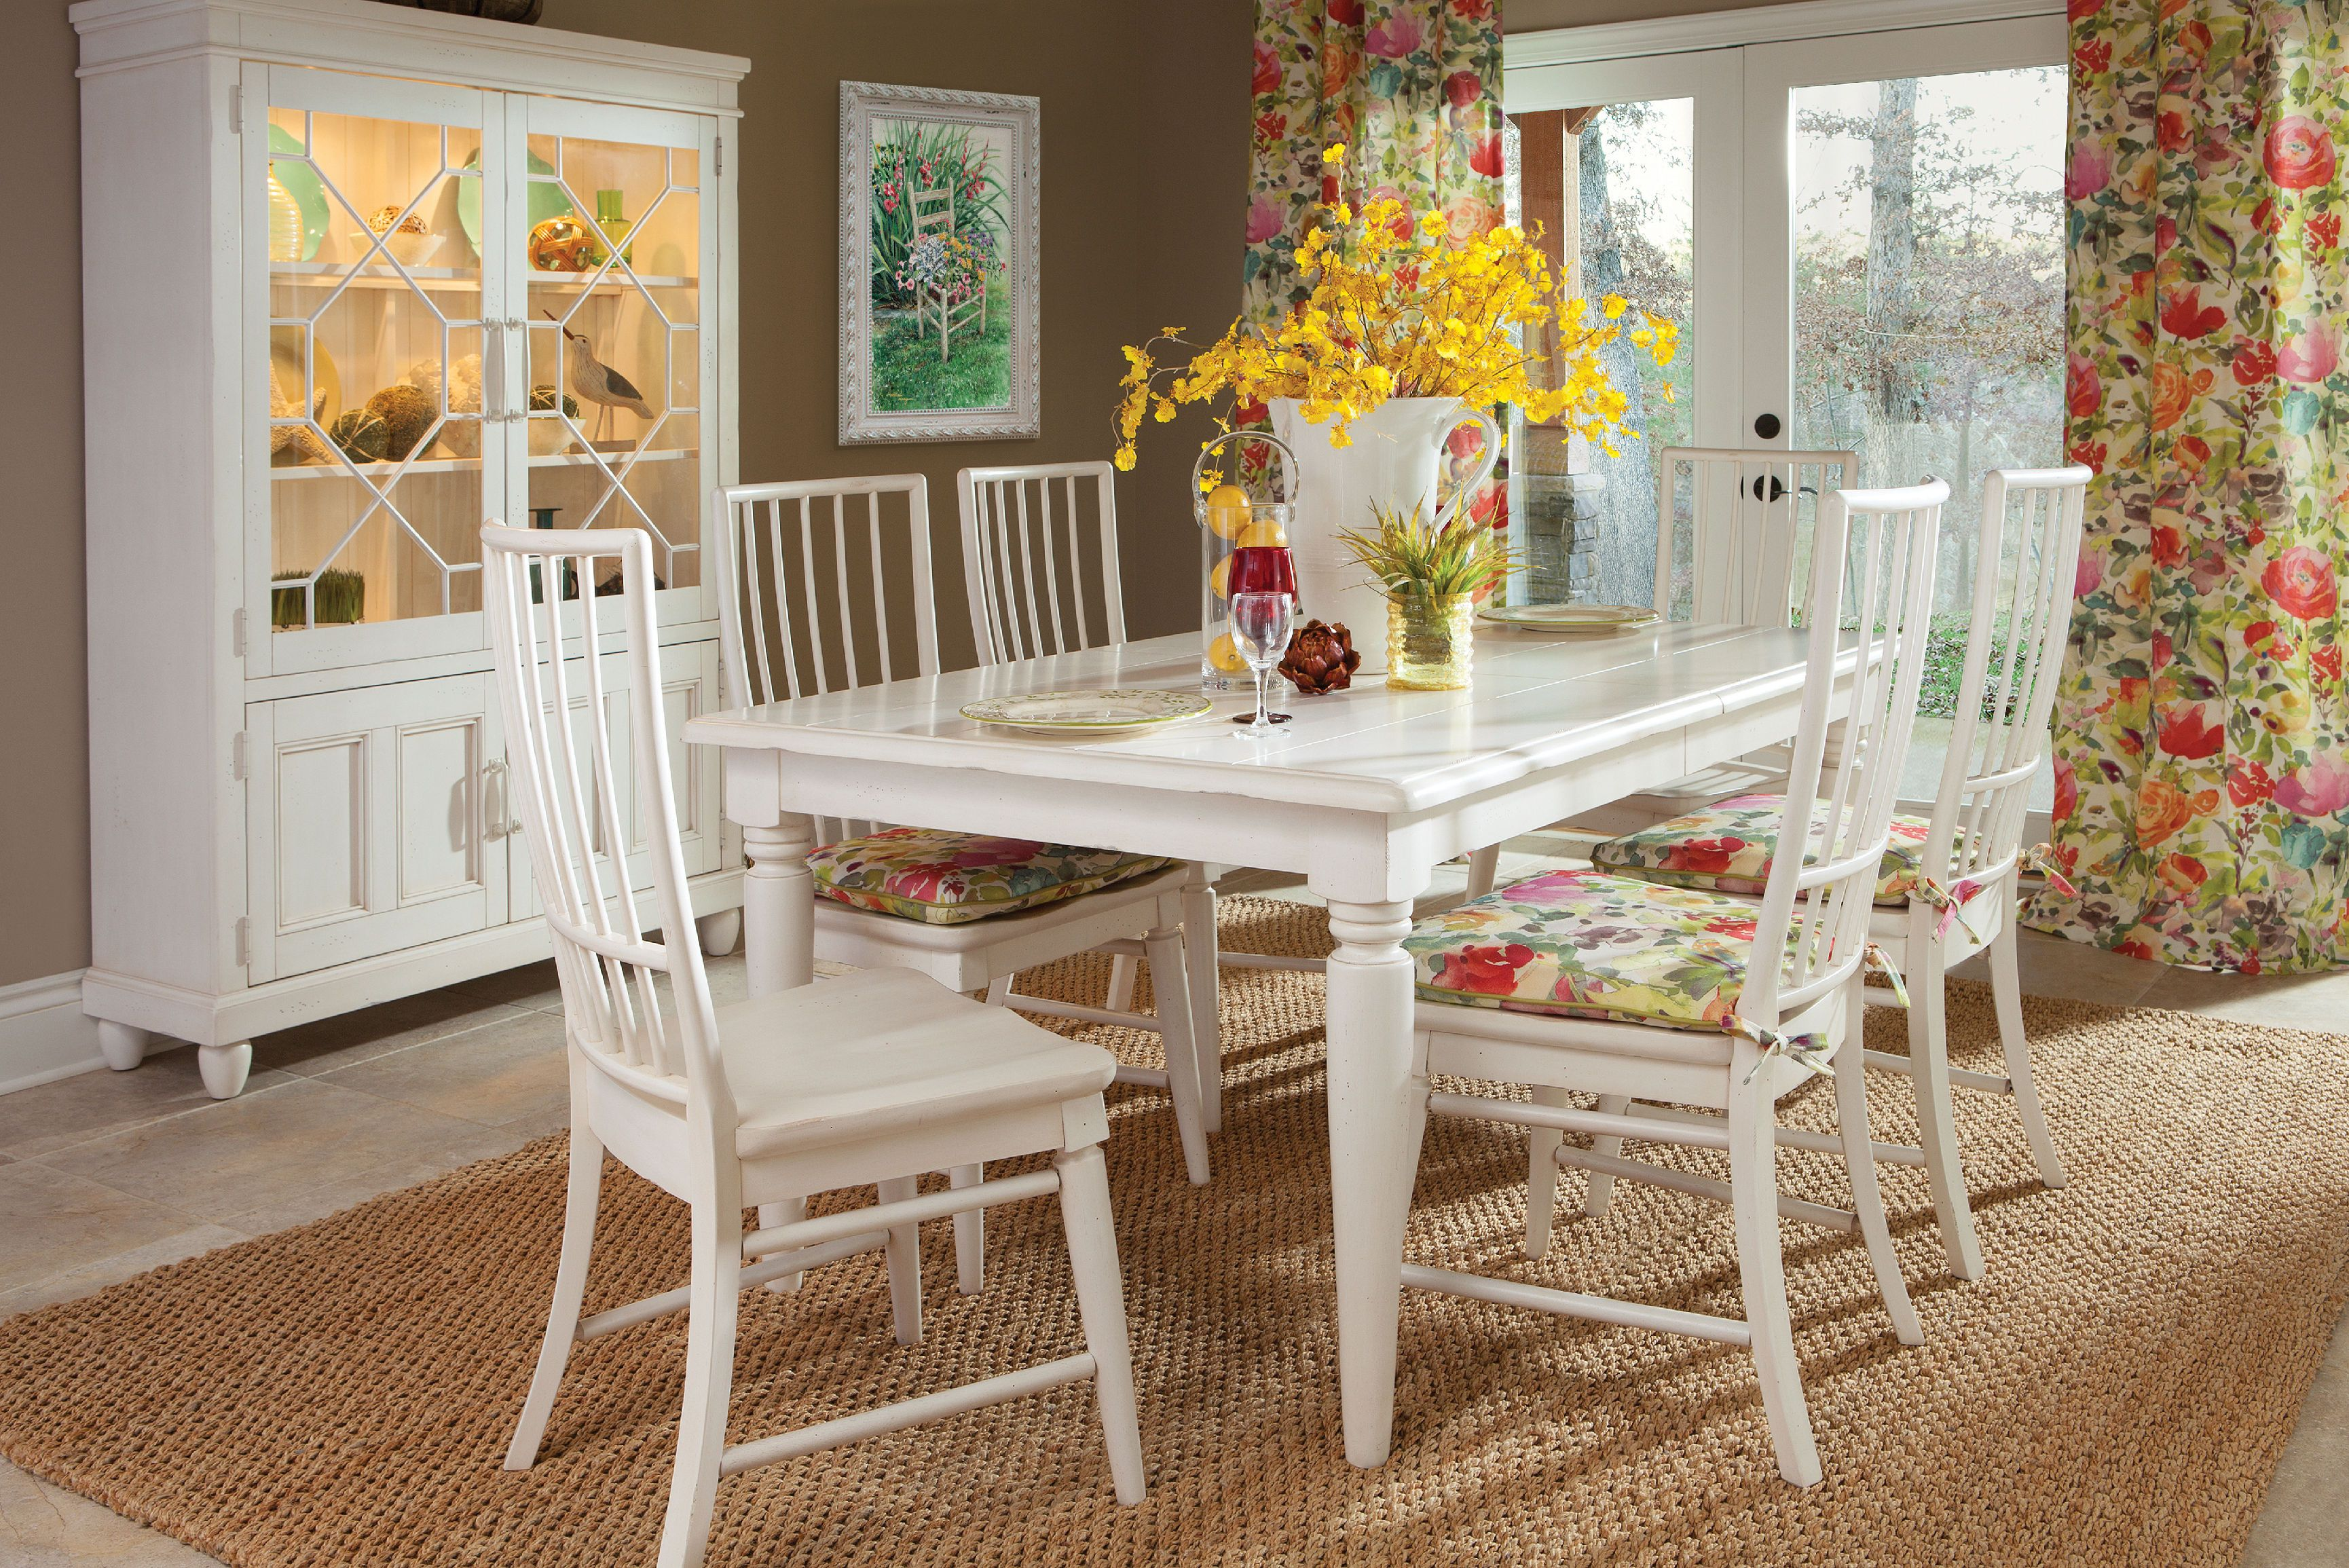 Carolina Preserves Dining Room Chair 424900 Drc  Klaussner Mesmerizing Klaussner Dining Room Furniture Inspiration